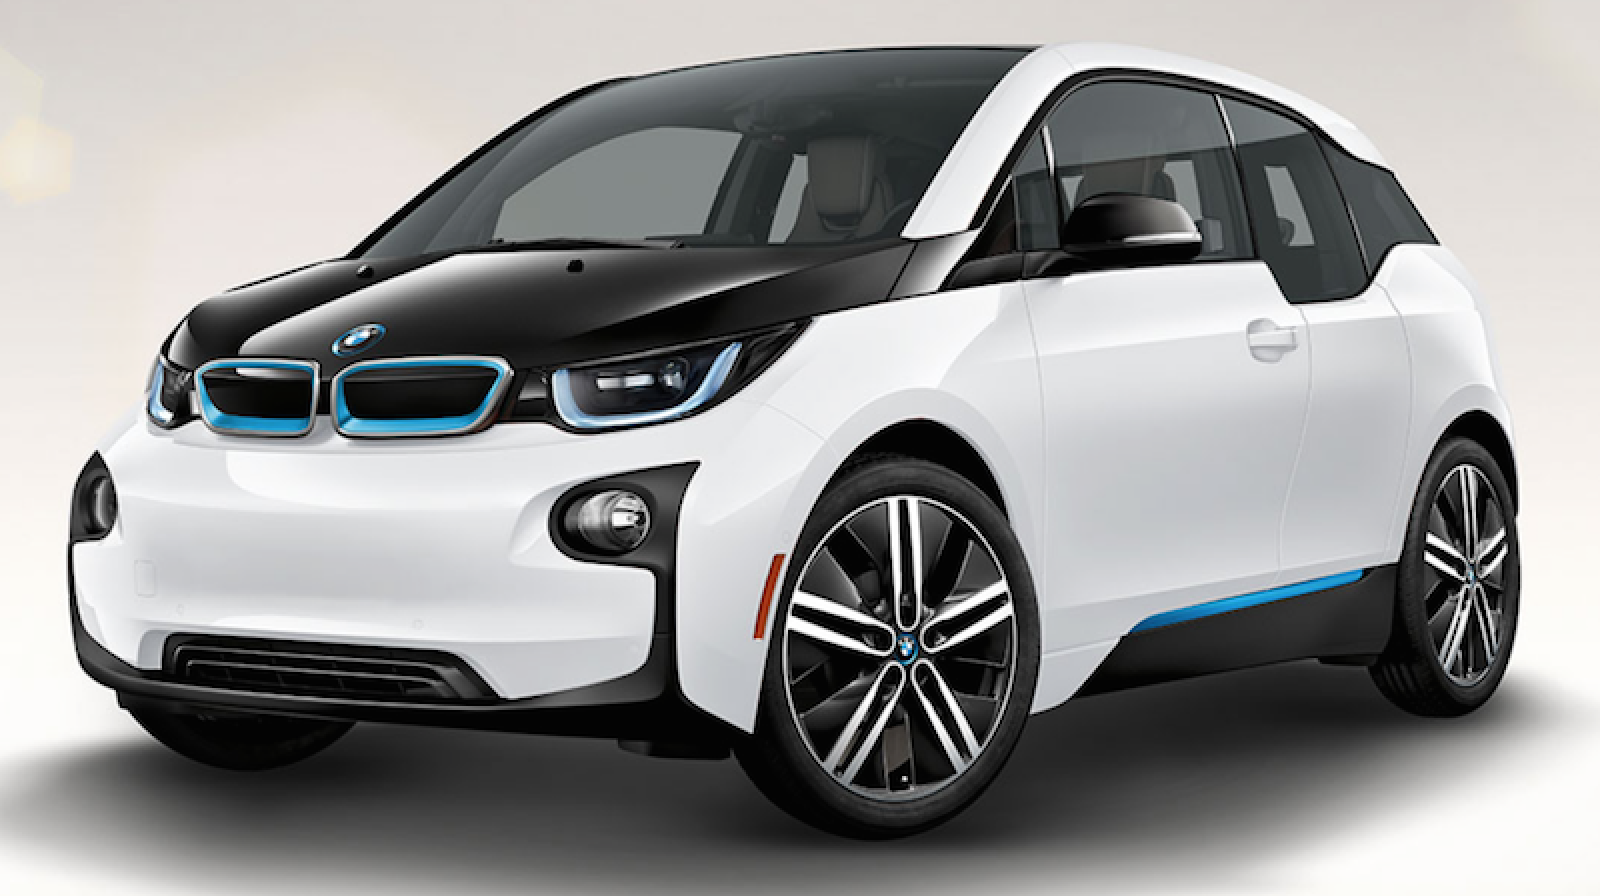 new report says apple was in talks to use bmw i3 as basis for electric car project